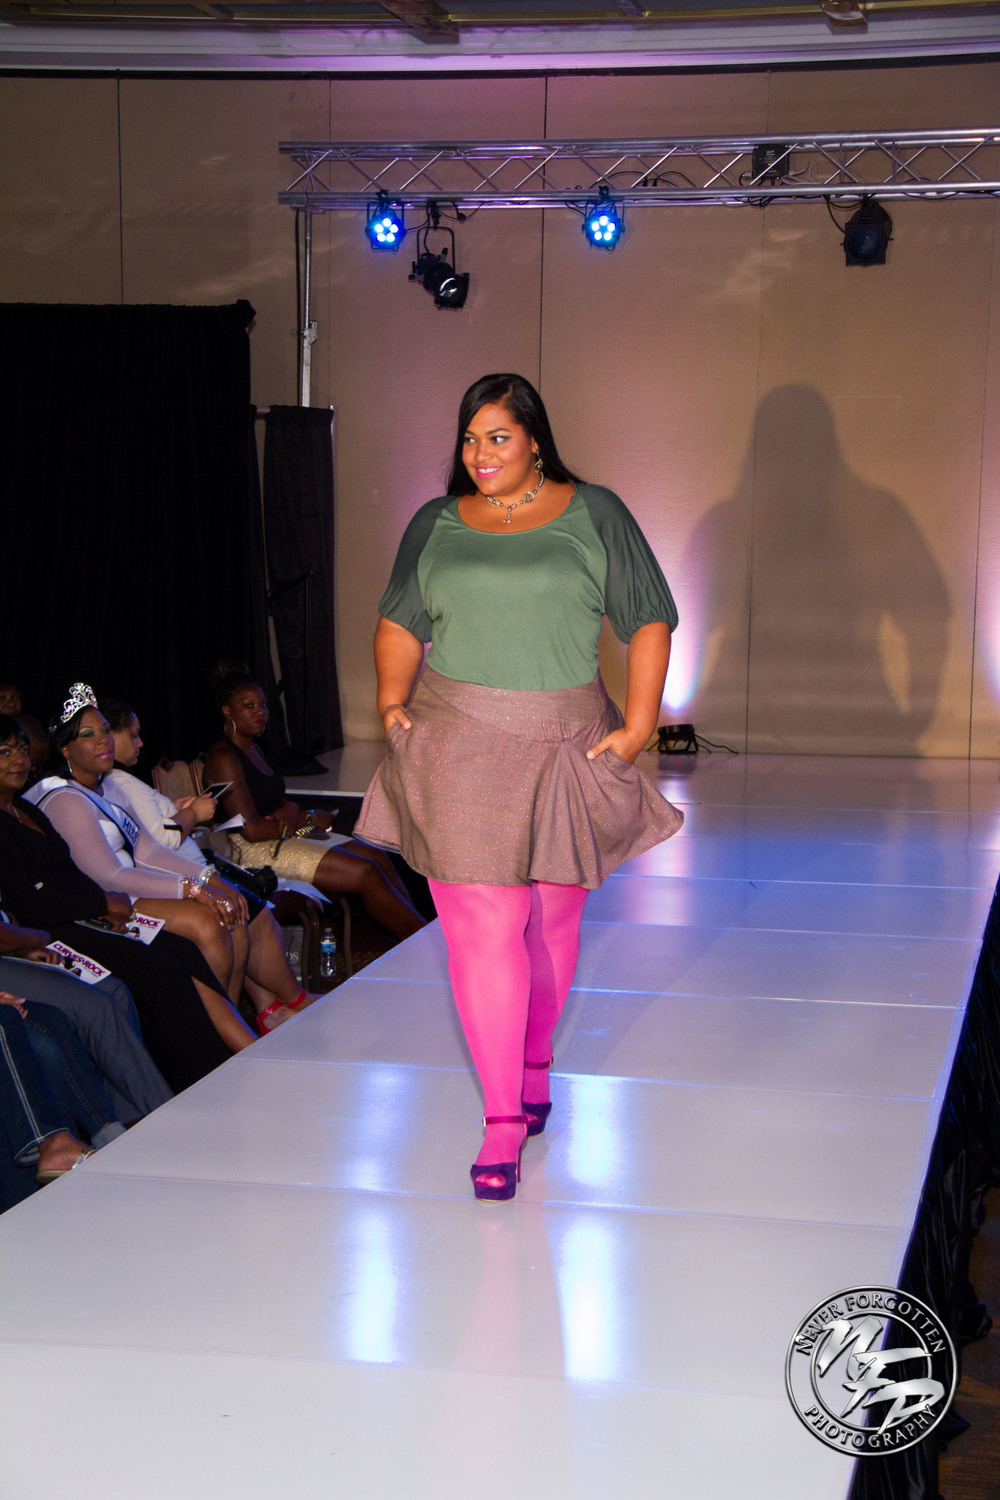 Take Wing Tee in colorblock and Dip to the Left Skirt in sparkle on Vanessa Mays